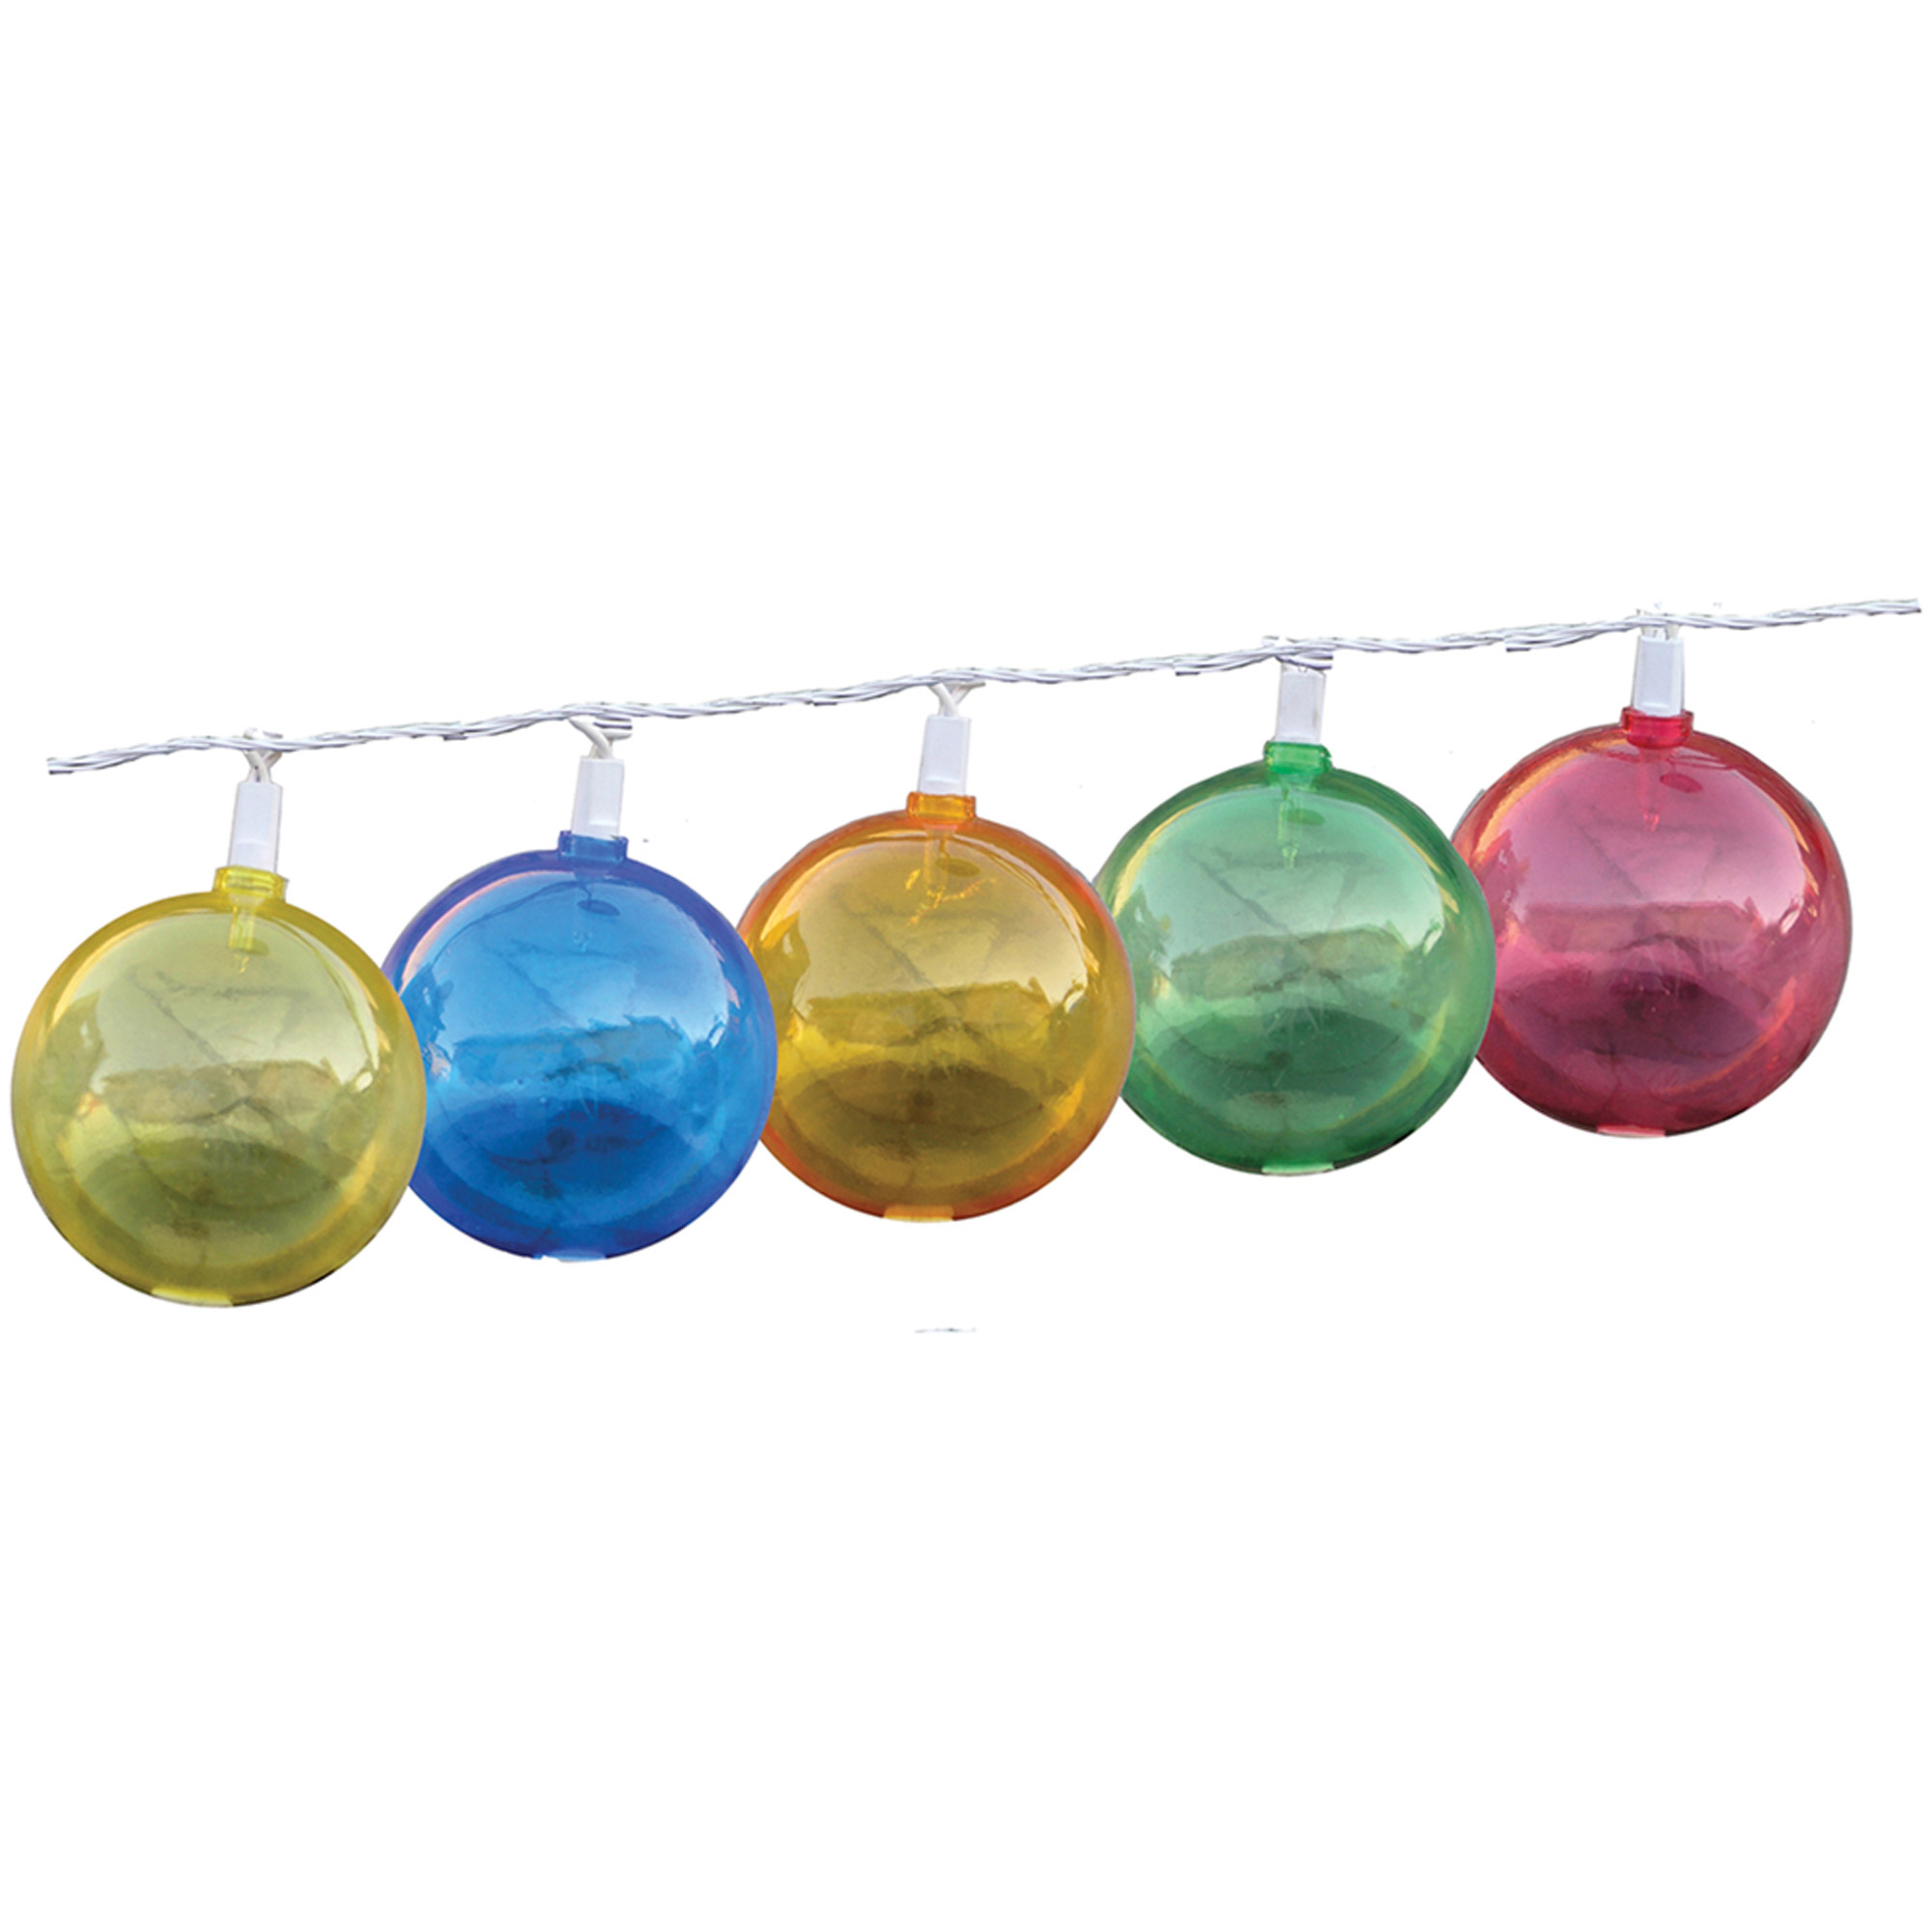 Prime Products Prime Products Global Lights, Multicolor, 12-9004